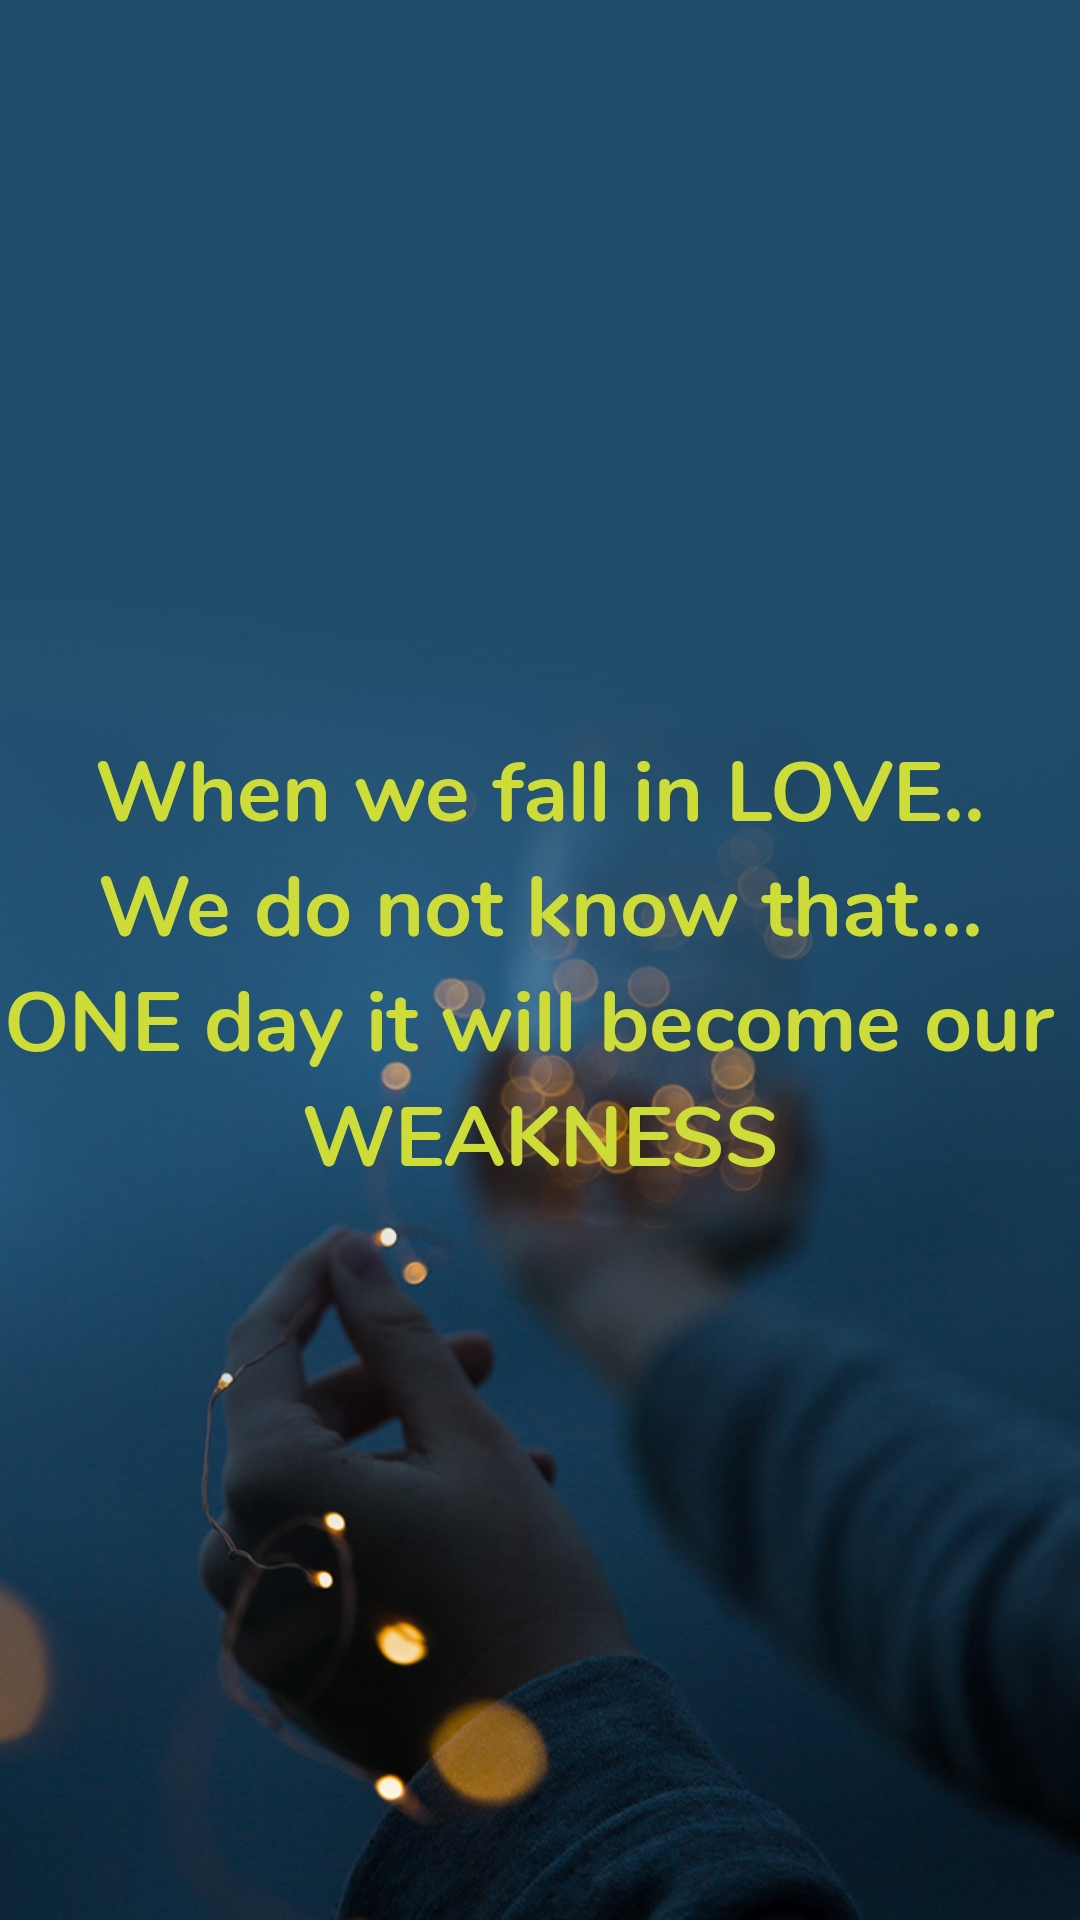 When we fall in LOVE.. We do not know that... ONE day it will become our  WEAKNESS